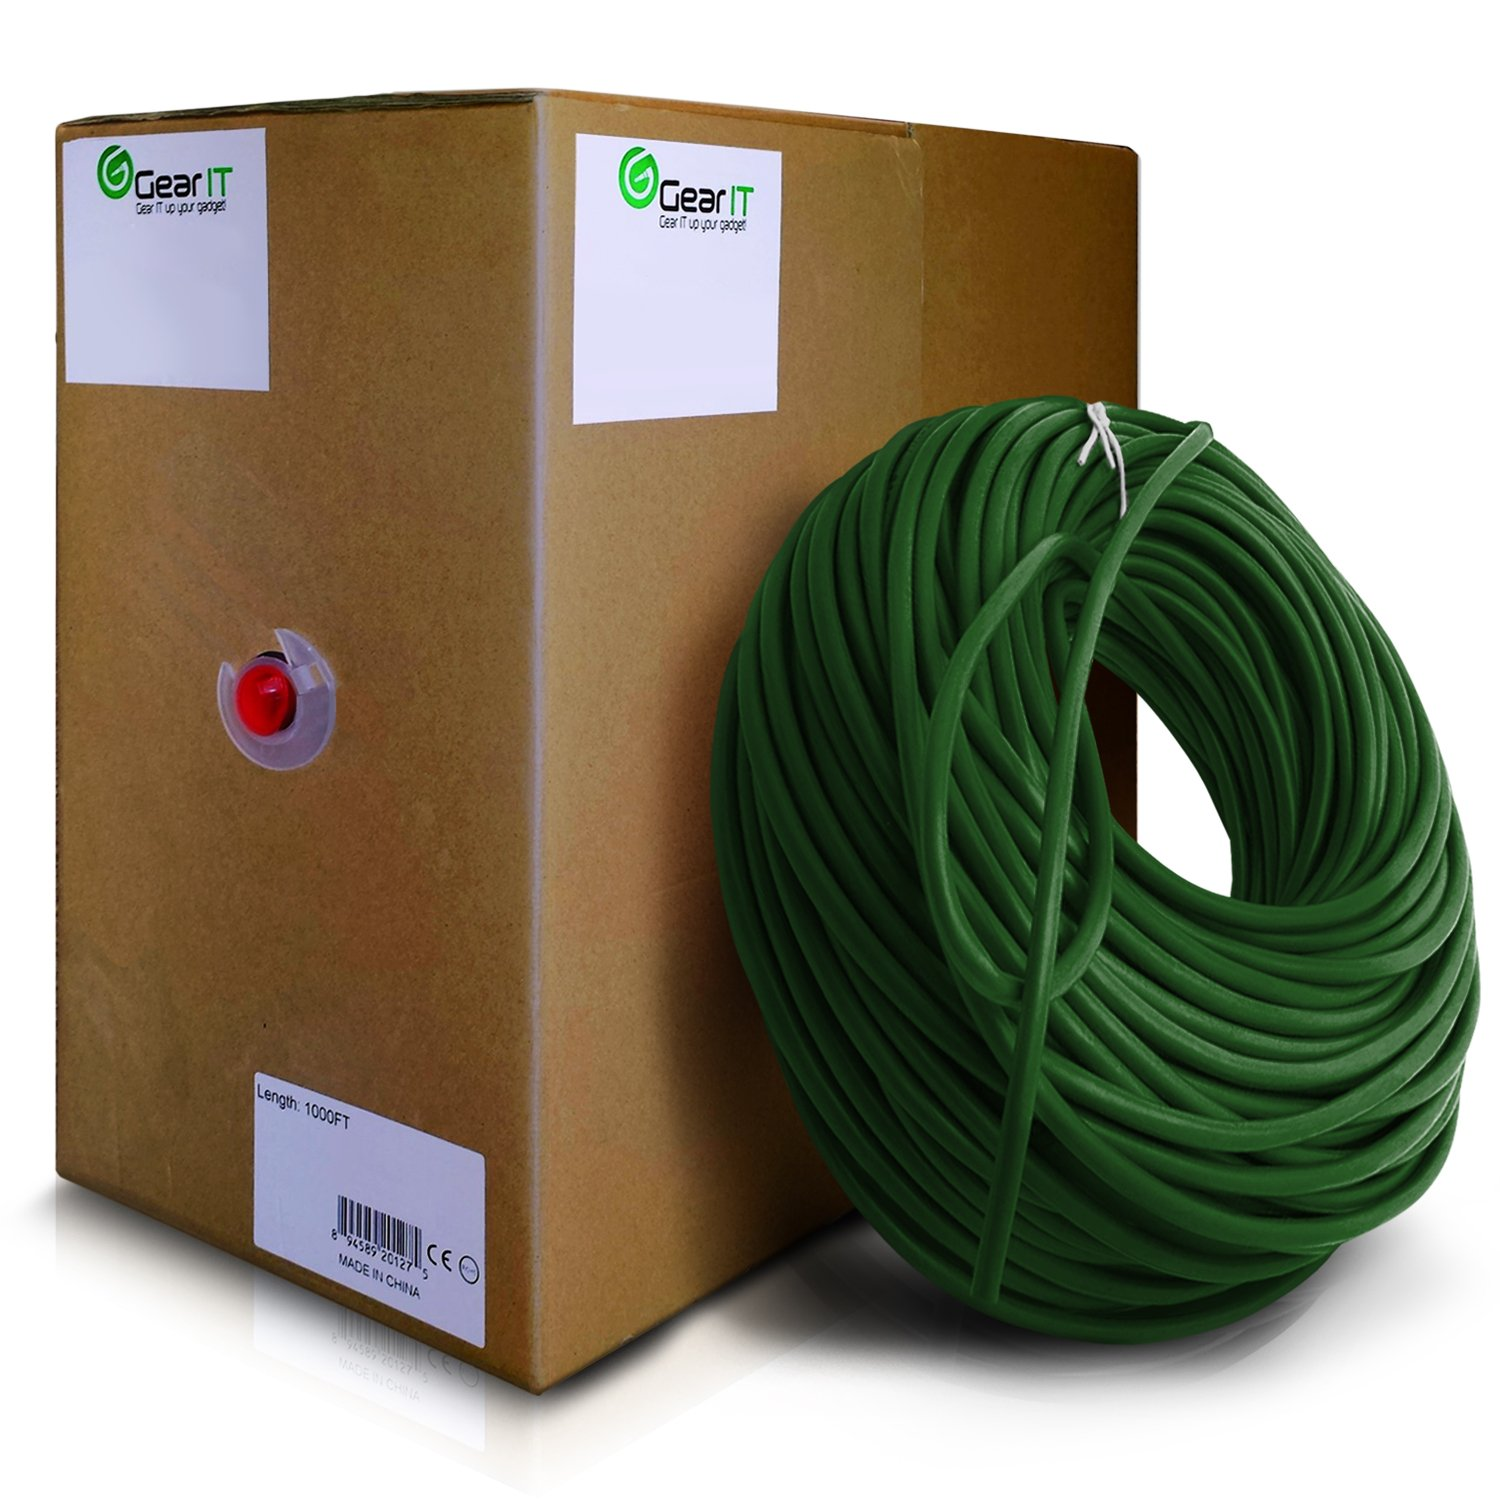 GearIt 1000 Feet Bulk Cat6 Ethernet Cable - Cat 6e 550Mhz 24AWG Full Copper Wire UTP Pull Box, Green by GearIT